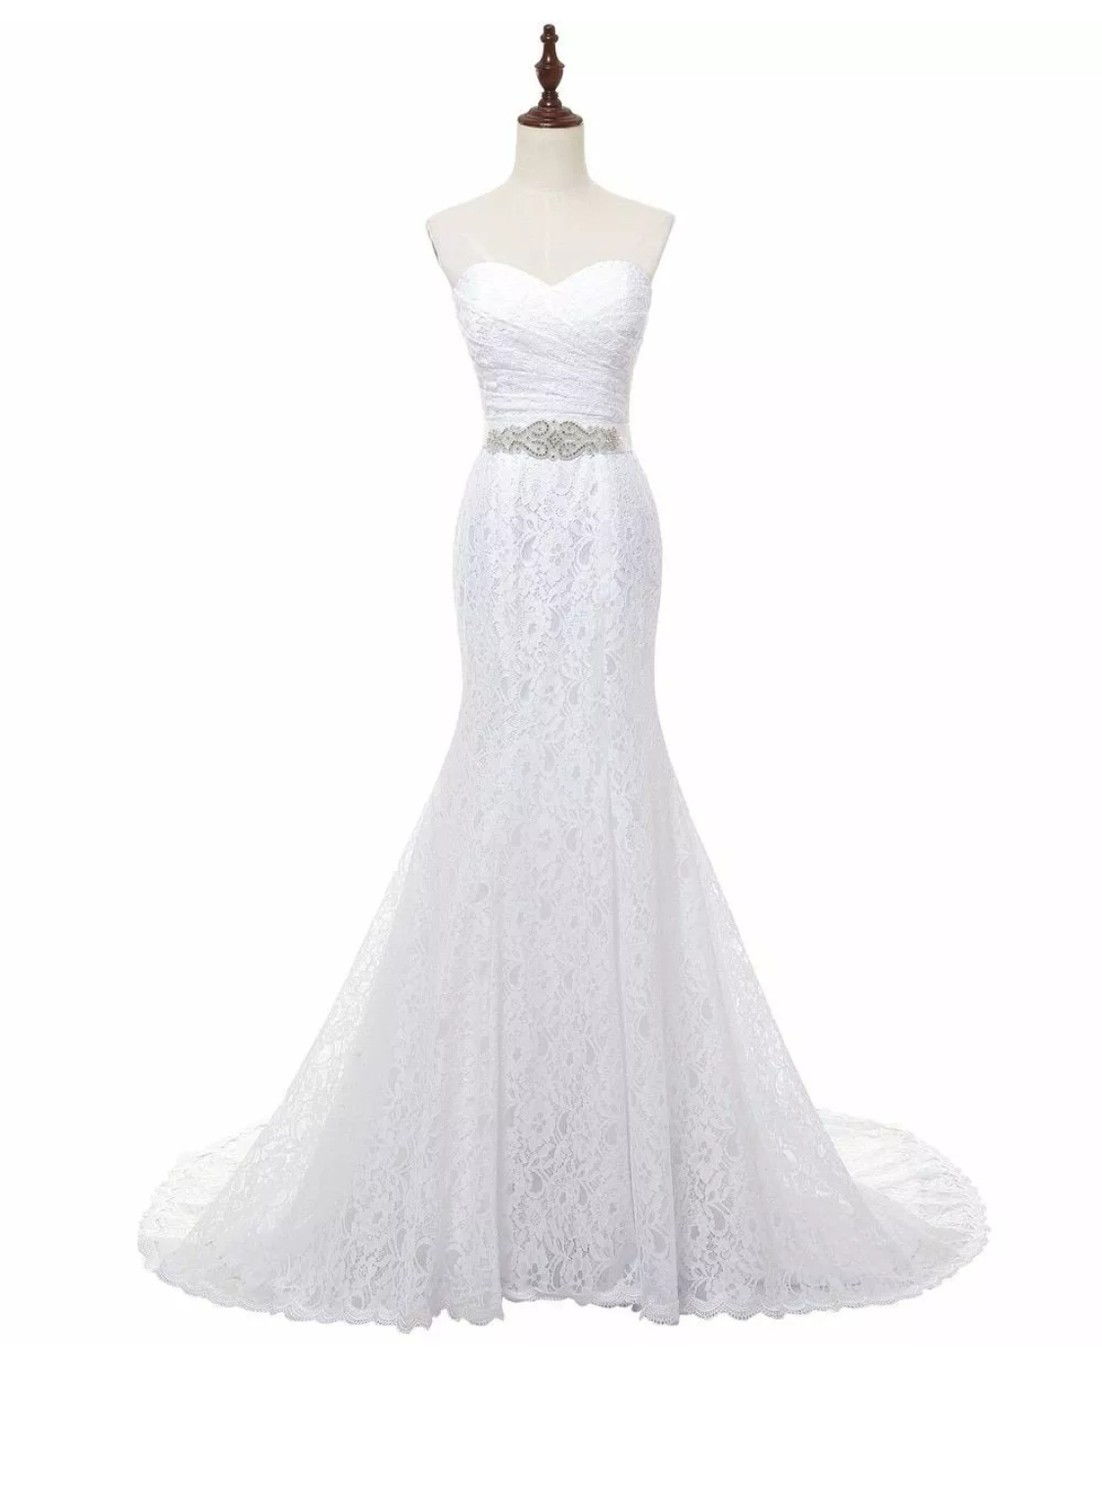 Bridal Wedding Gown Real Photos White Lace Mermaid Wedding Dress Train Vintage Sash 9 COLORS Customized 2-22W